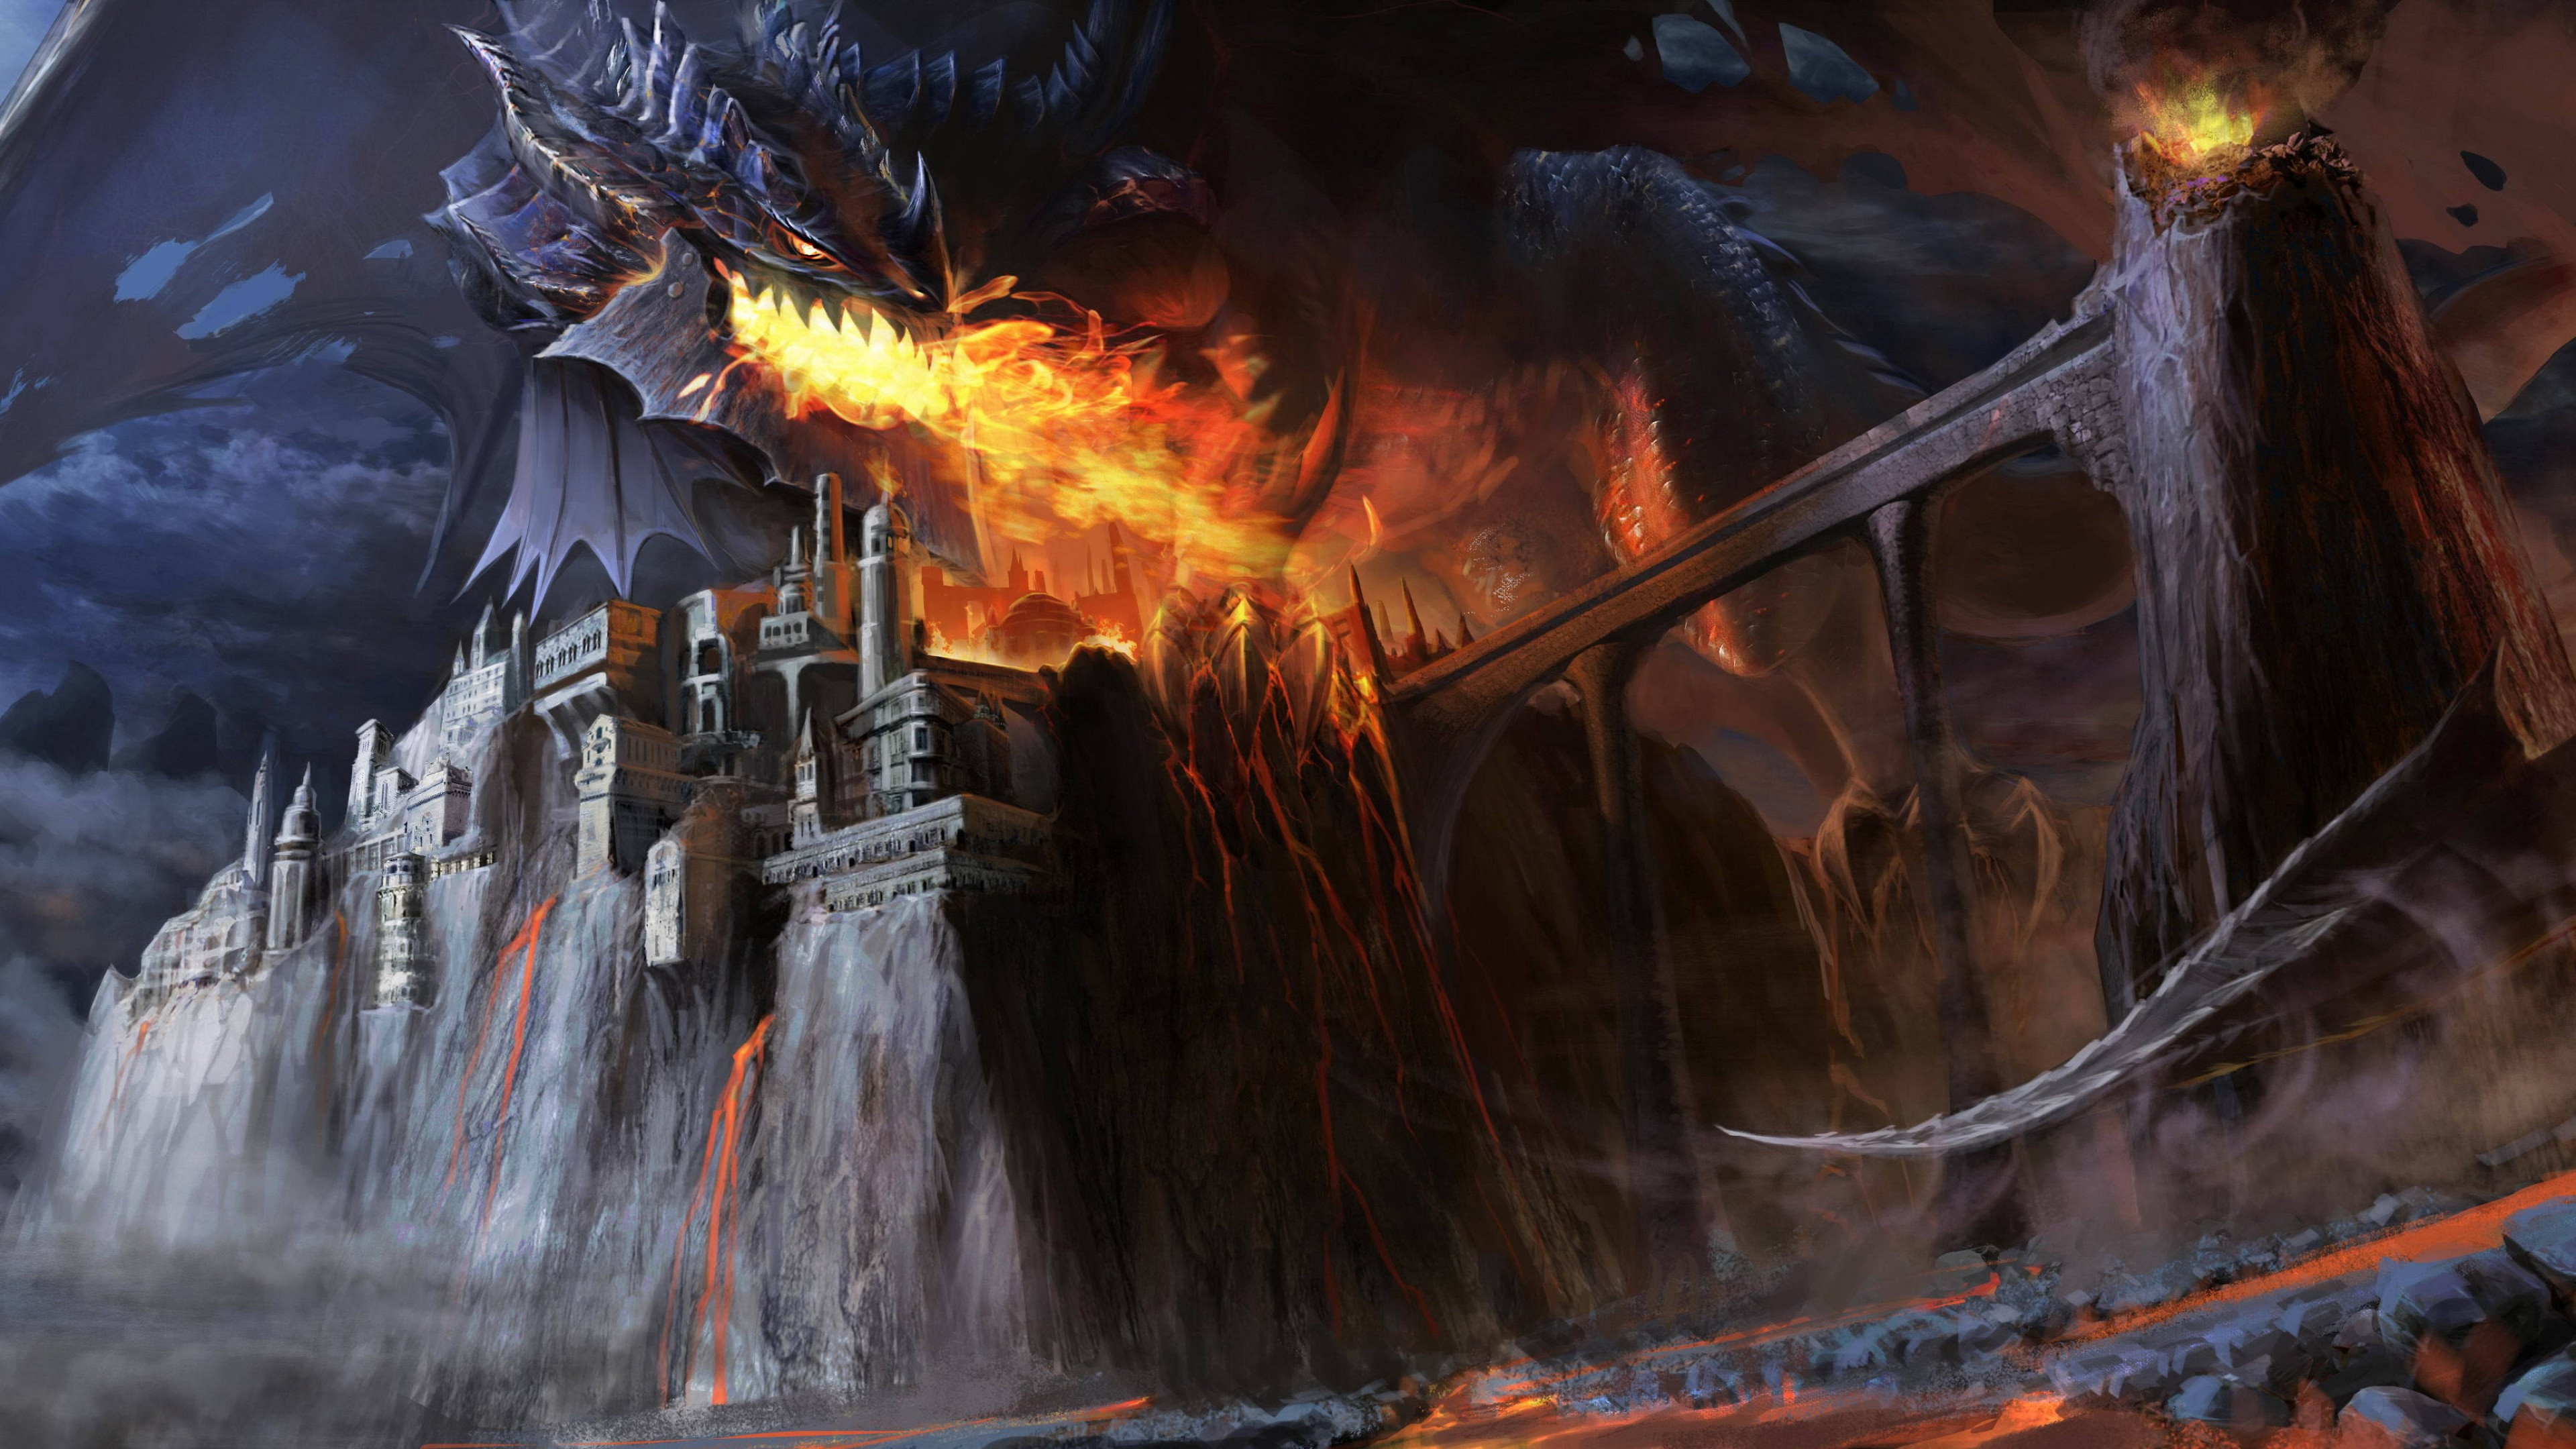 Wallpaper Dragon attacking castle